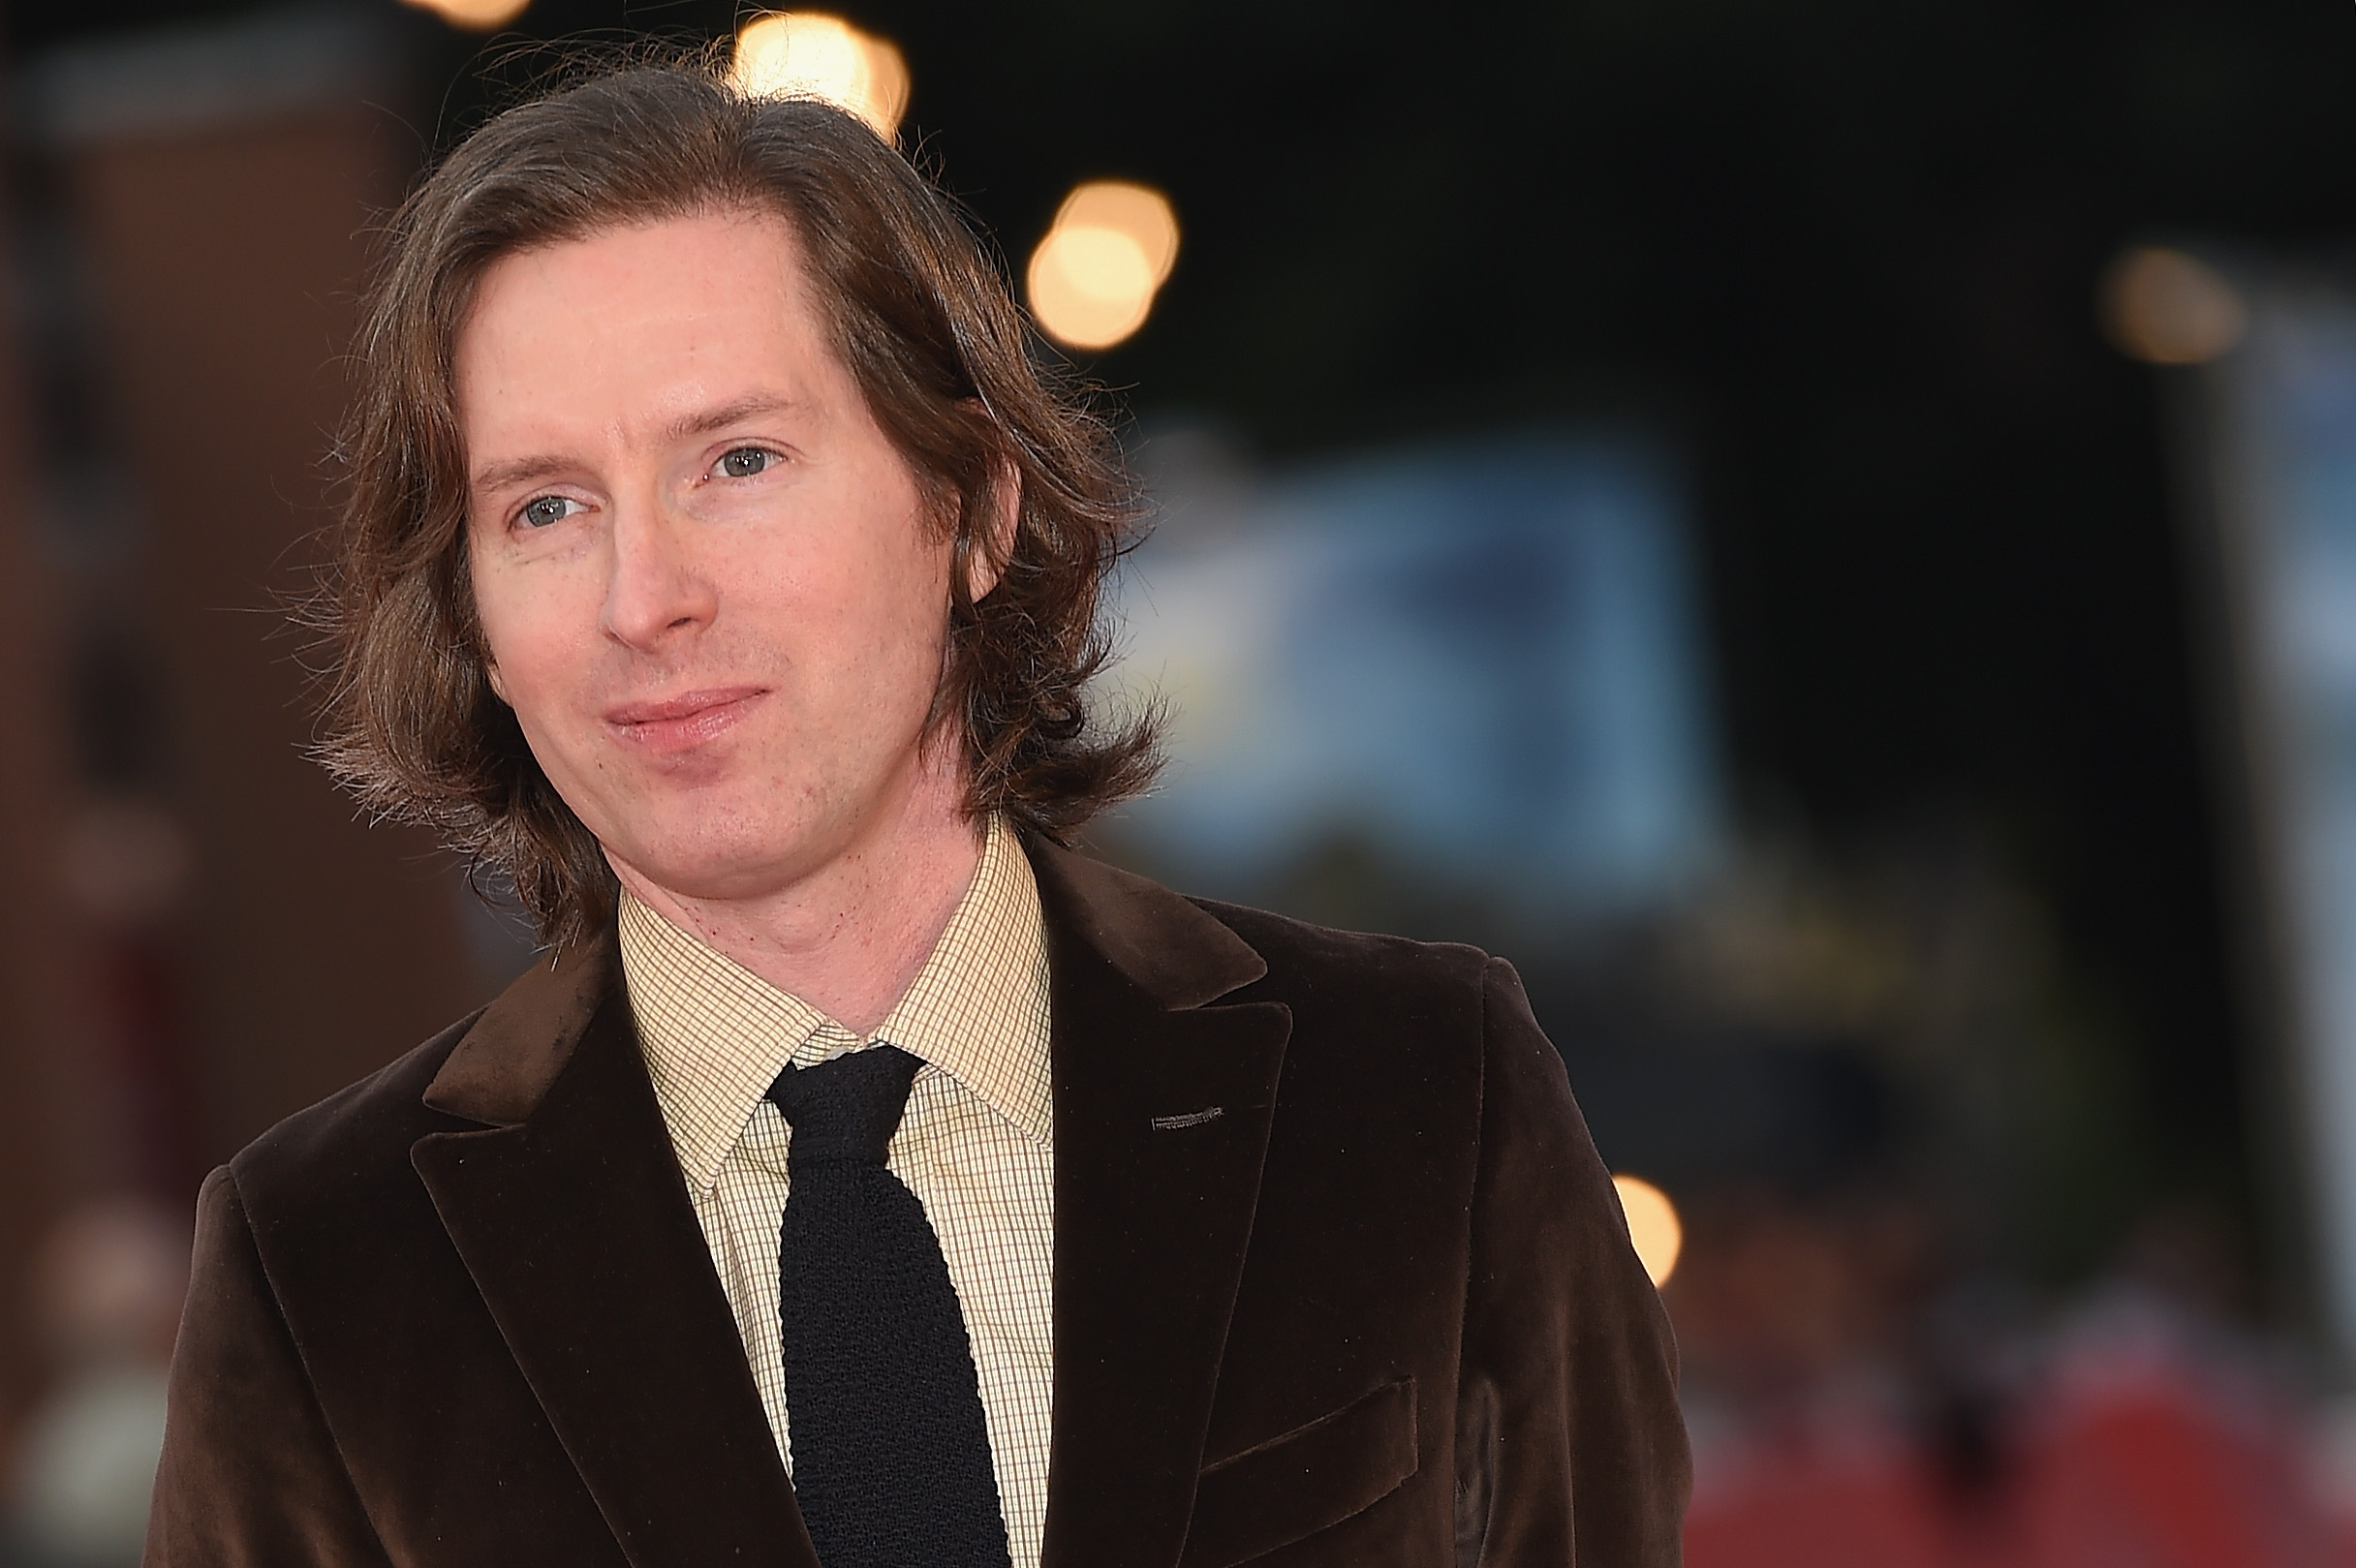 Wes Anderson walks the red carpet during the 10th Rome Film Fest at Auditorium Parco Della Musica on October 19, 2015 in Rome, Italy.